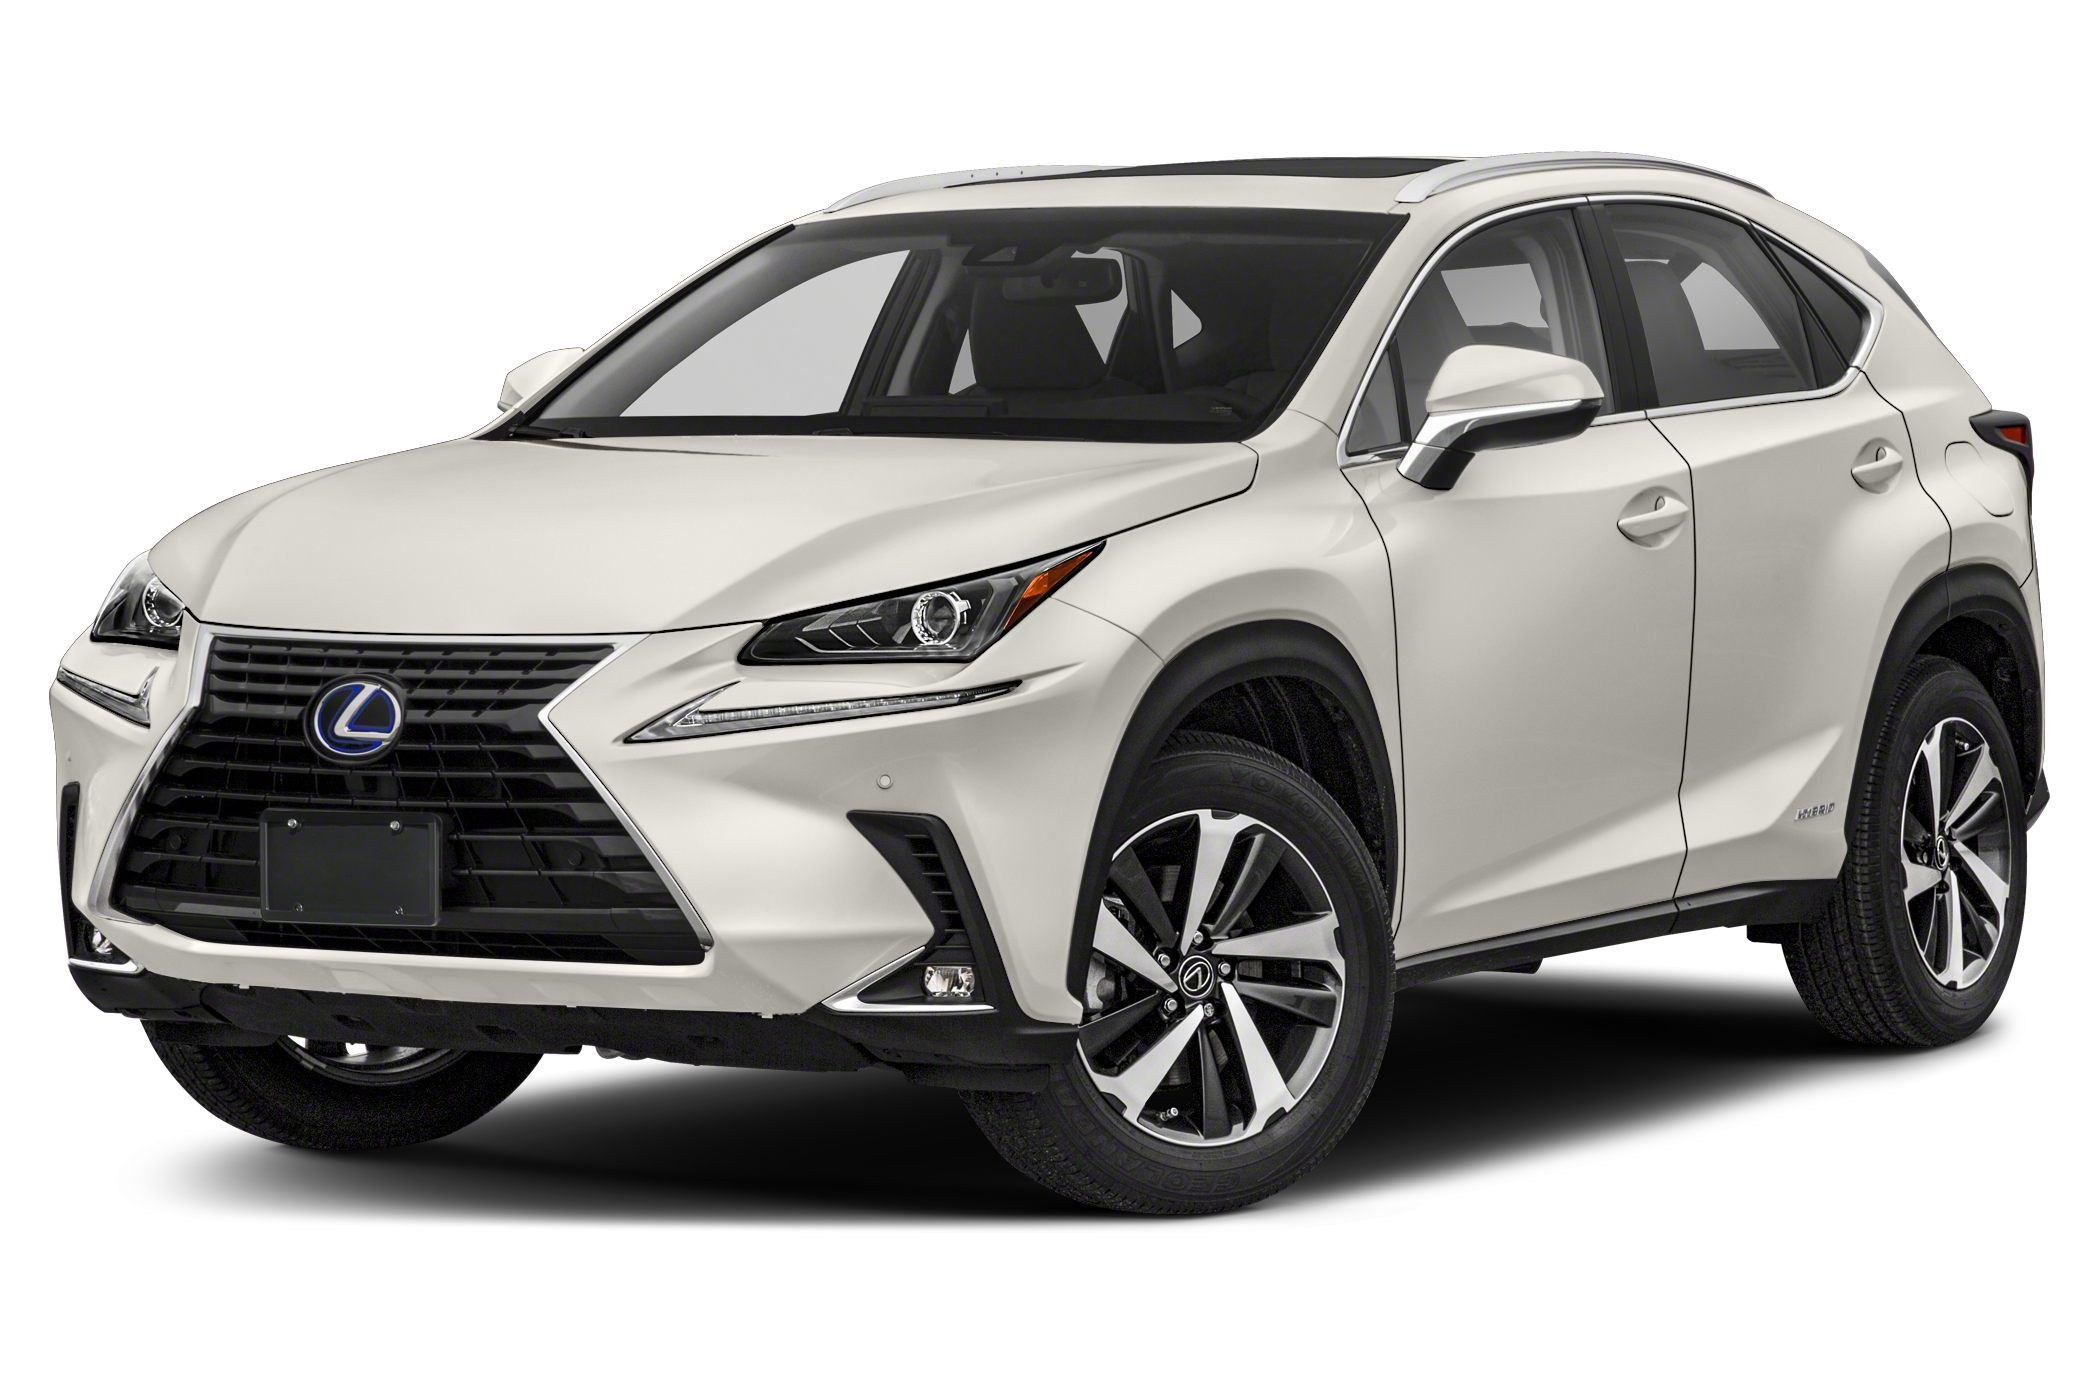 Lexus Nx Hybrid 2020 Review And Release Date In 2020 Lexus Suv Lexus Lexus Gx